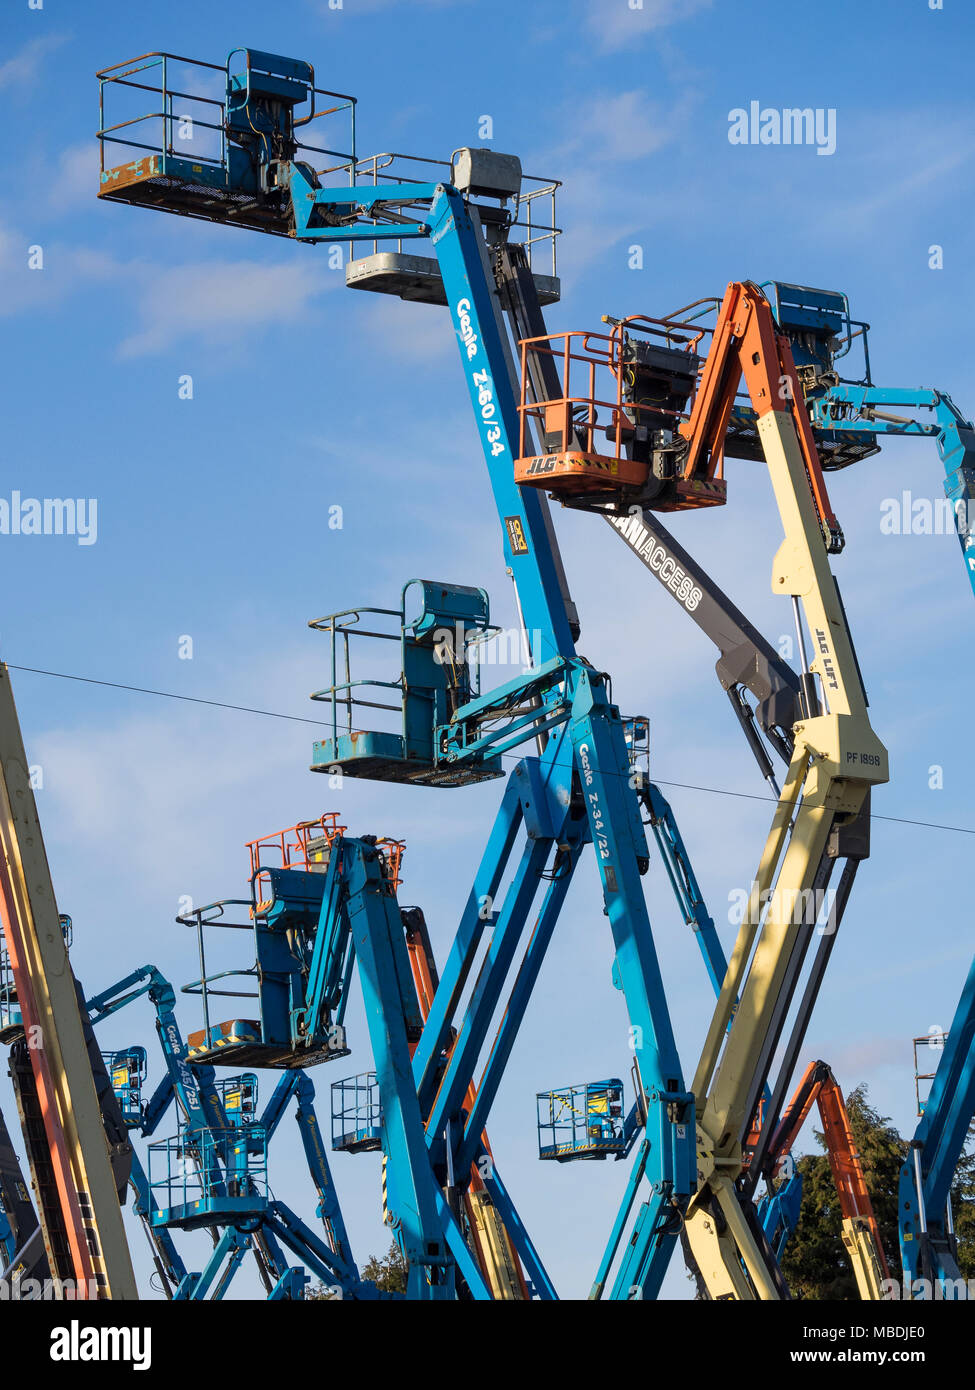 Aerial work platforms or 'cherrypickers'. The term 'Cherrypicking' has been widely used in the UK/EU Brexit negotiations - Stock Image